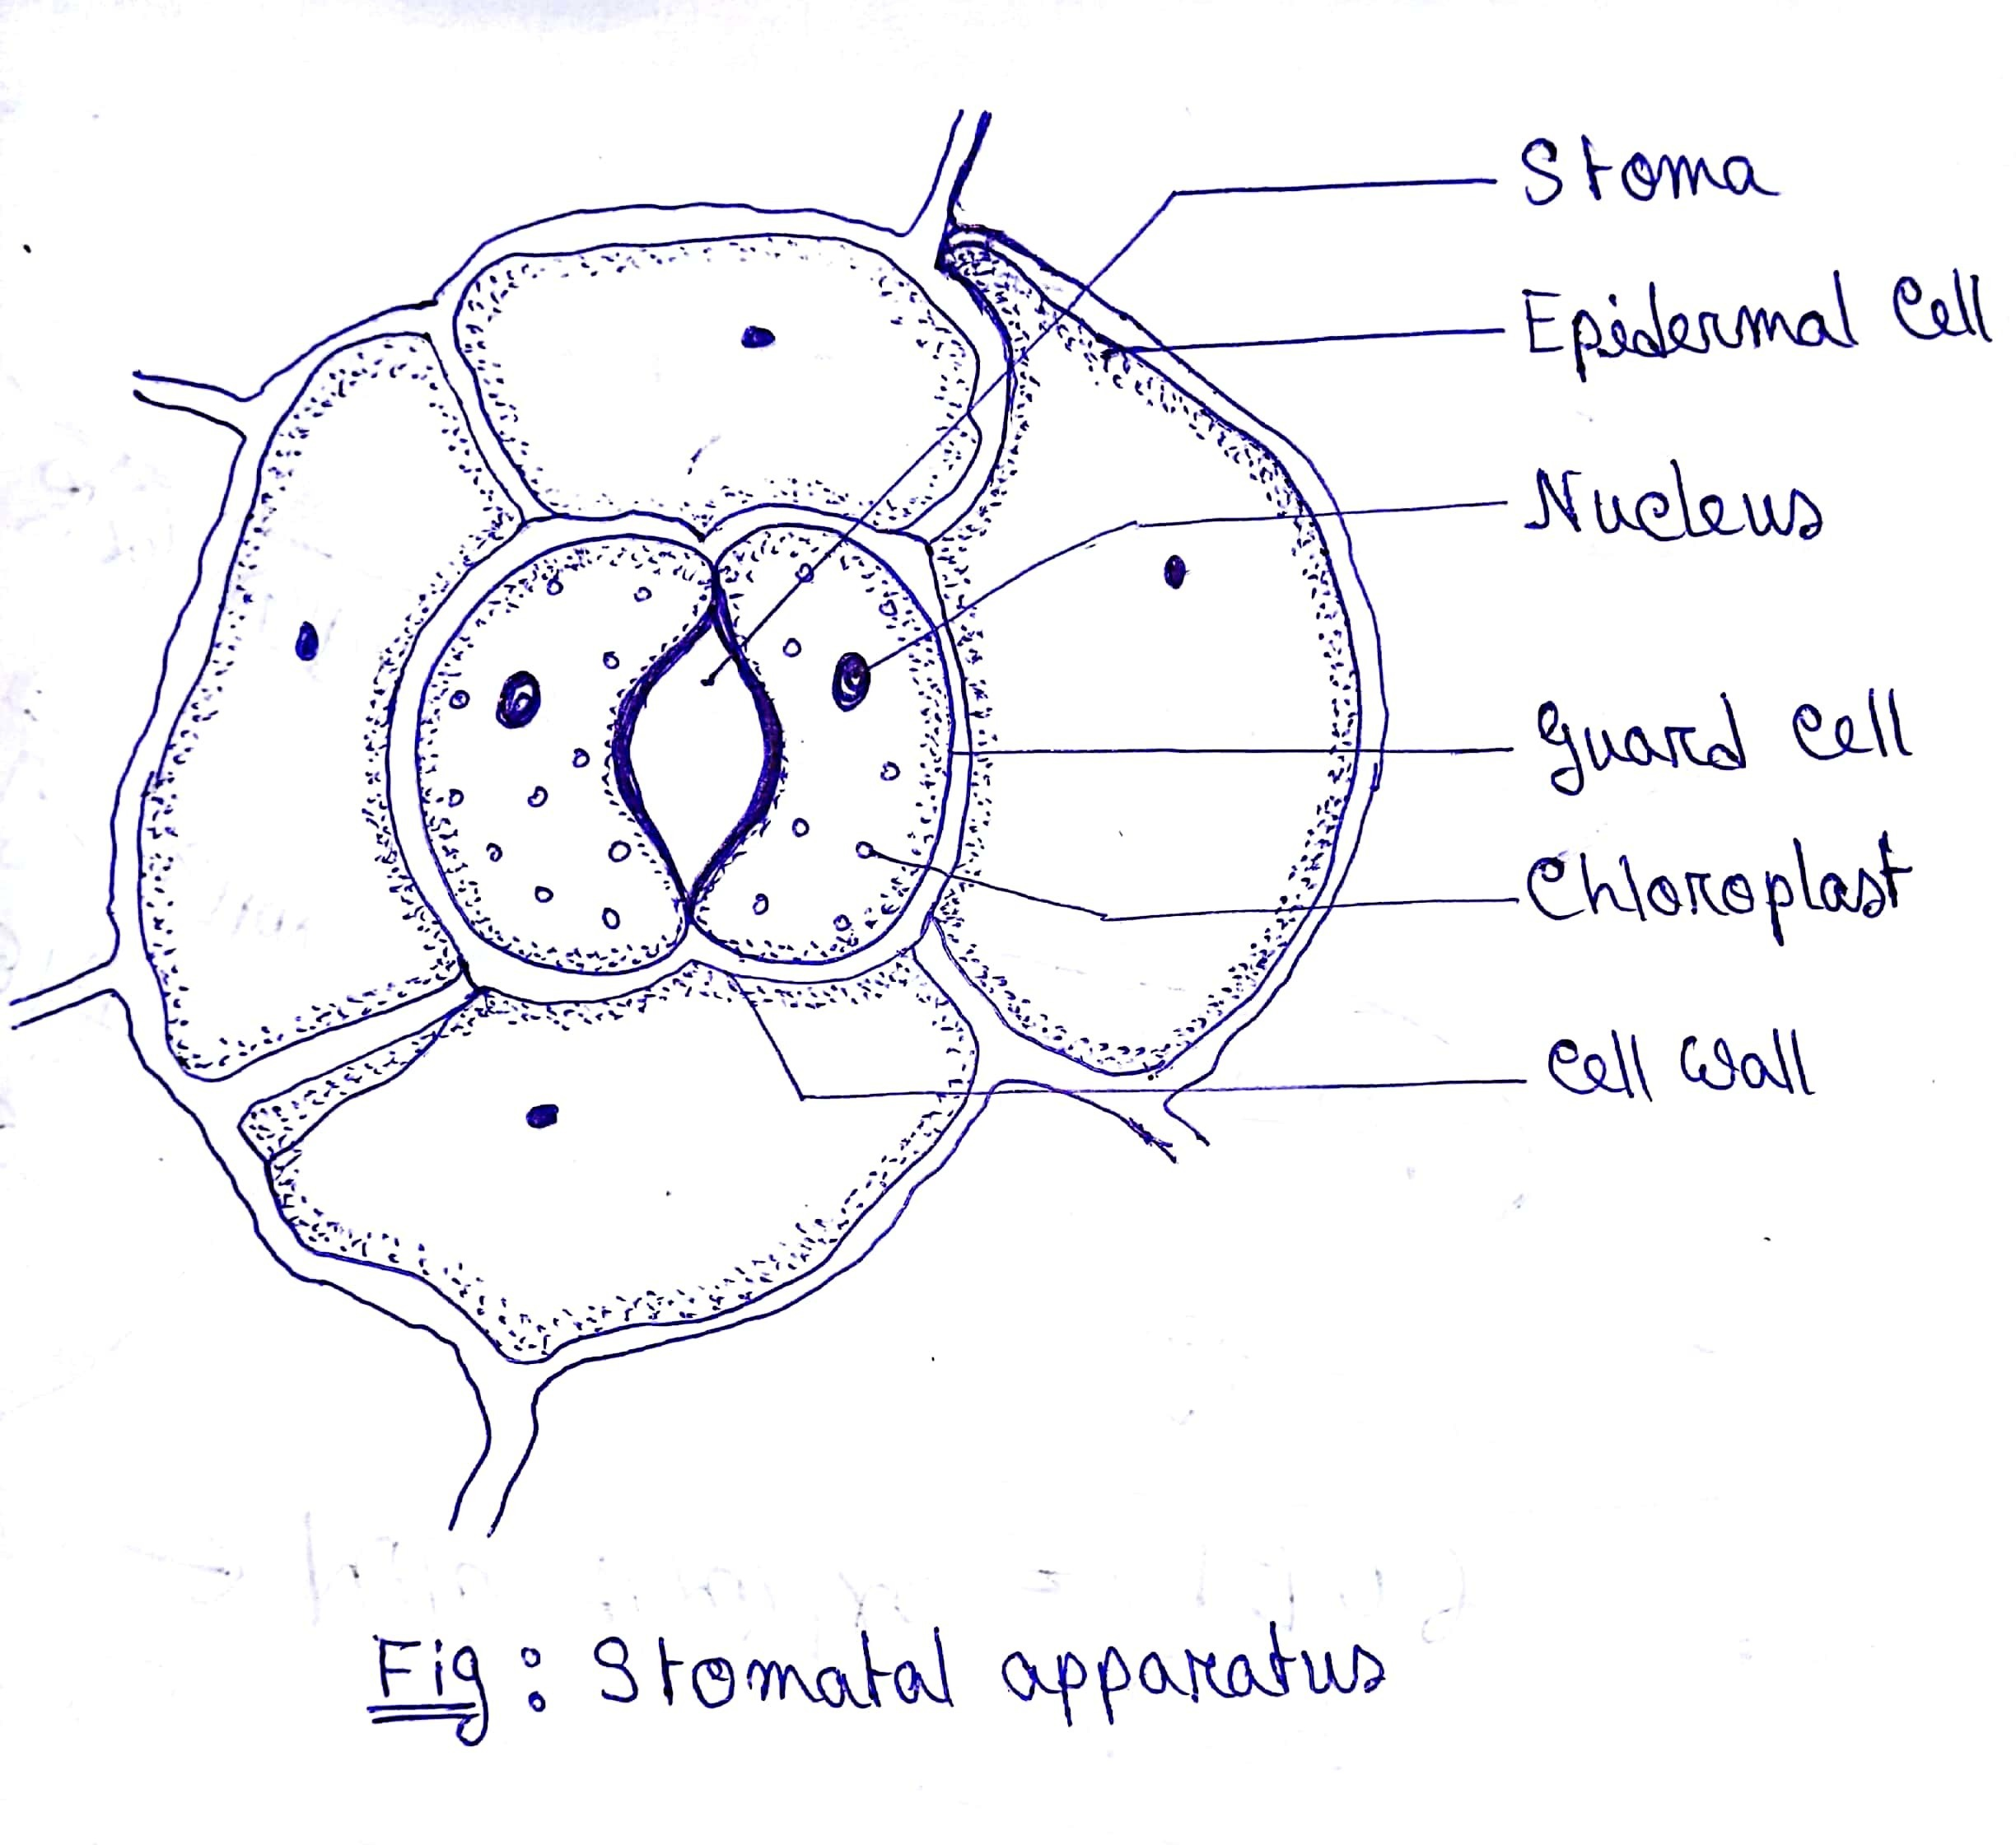 Draw a diagram of stomatal apparatus found in the epidermis